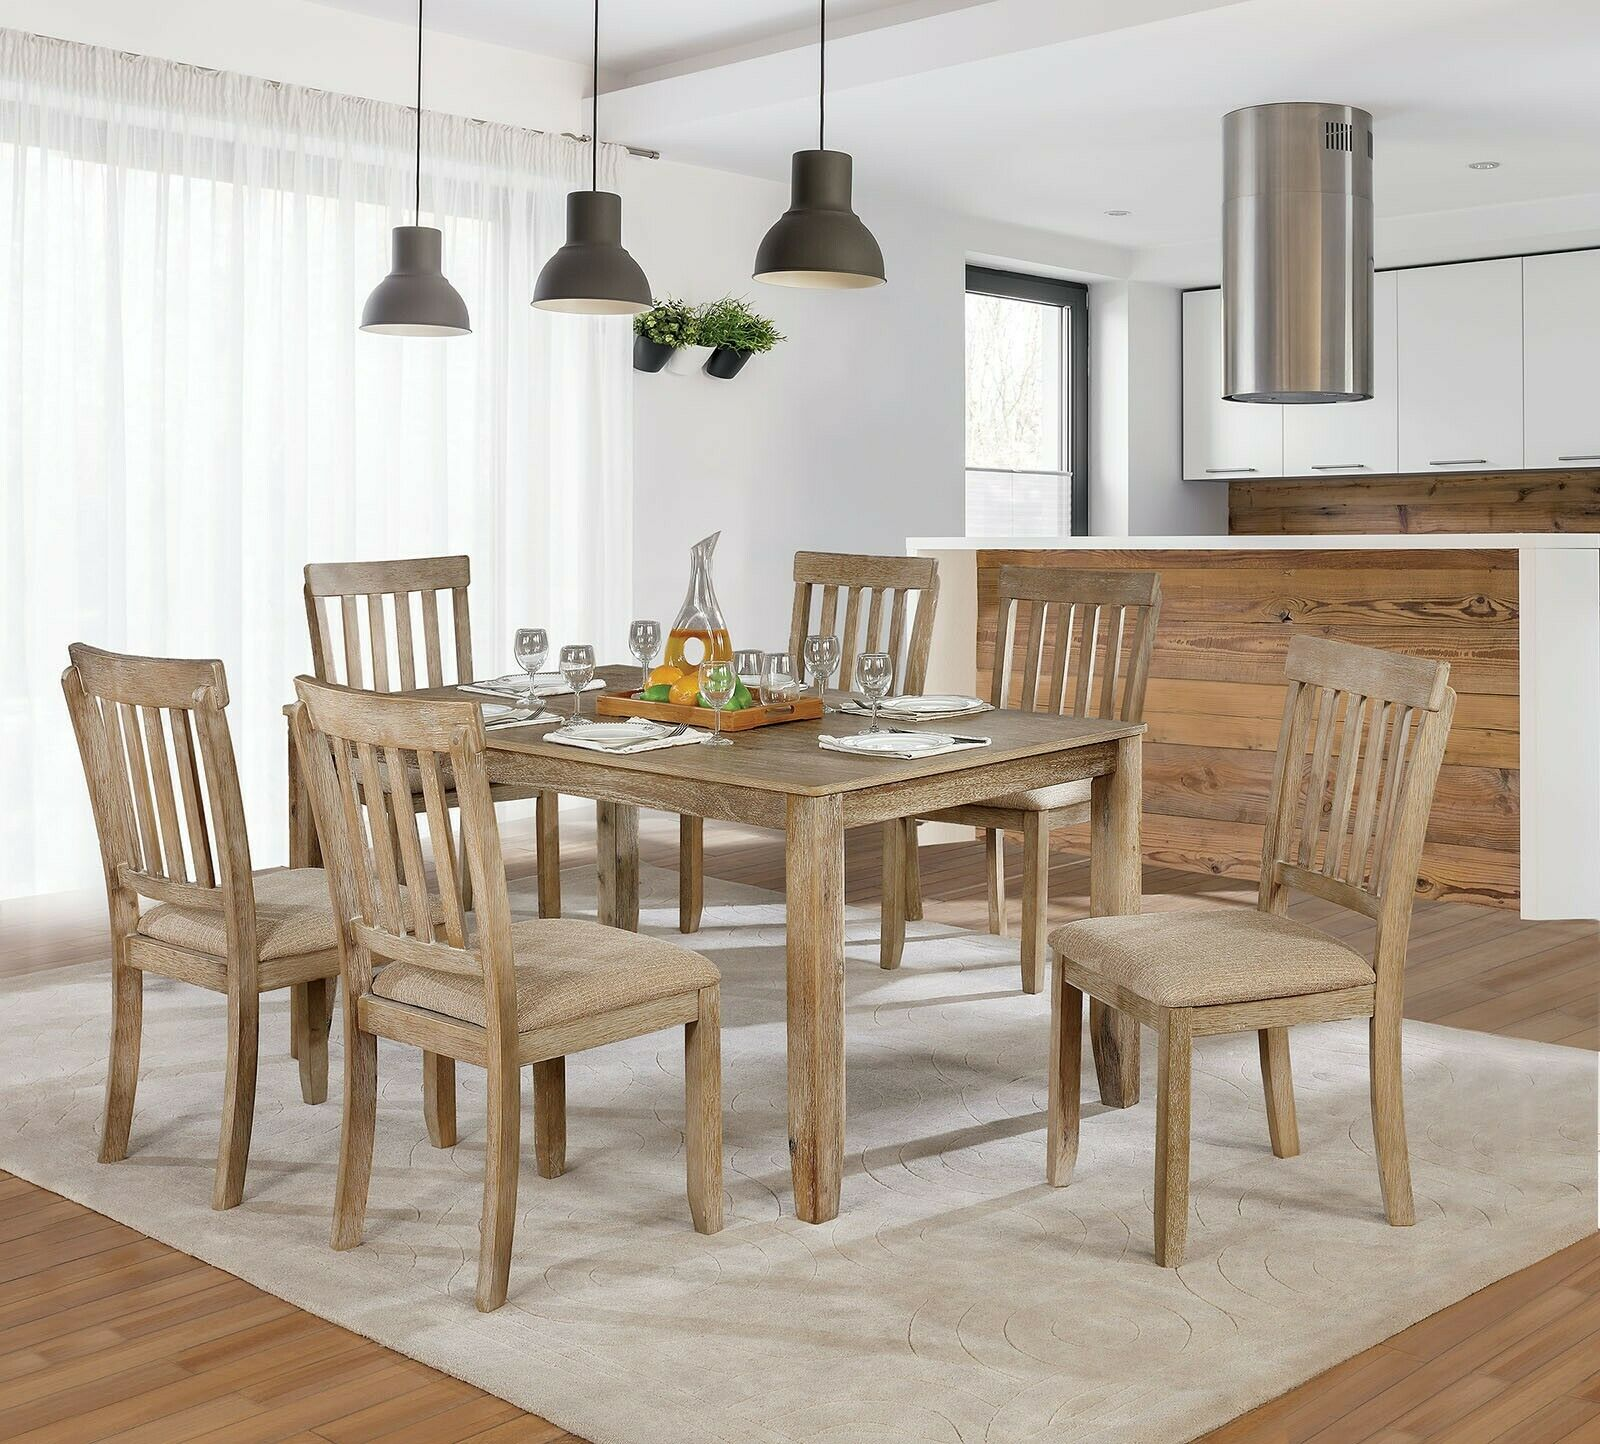 Rustic Style Wooden Furniture 7pc Antique Dining Room Set Table Chair  Upholstery